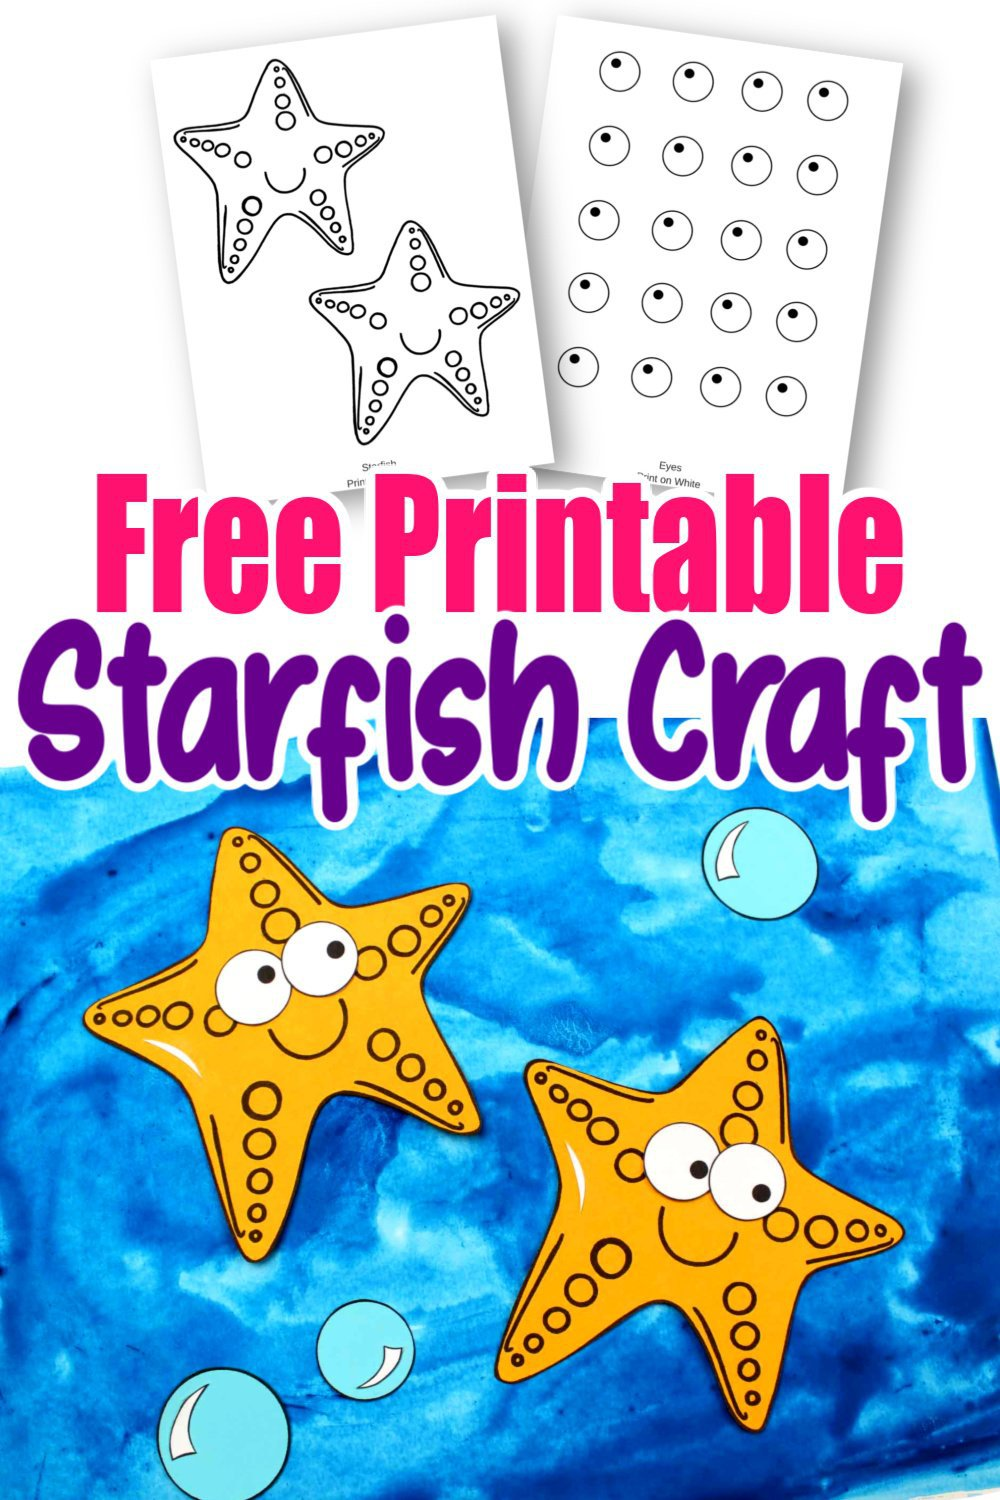 Dive under the sea to find your next sea creature ocean craft! This adorable starfish is so easy to make! Simply print the star fish template and get your arts and crafts on! He is perfect for kids of all ages, especially preschoolers and toddlers! #starfish #starfishcrafts #oceananimals #oceananimalcrafts